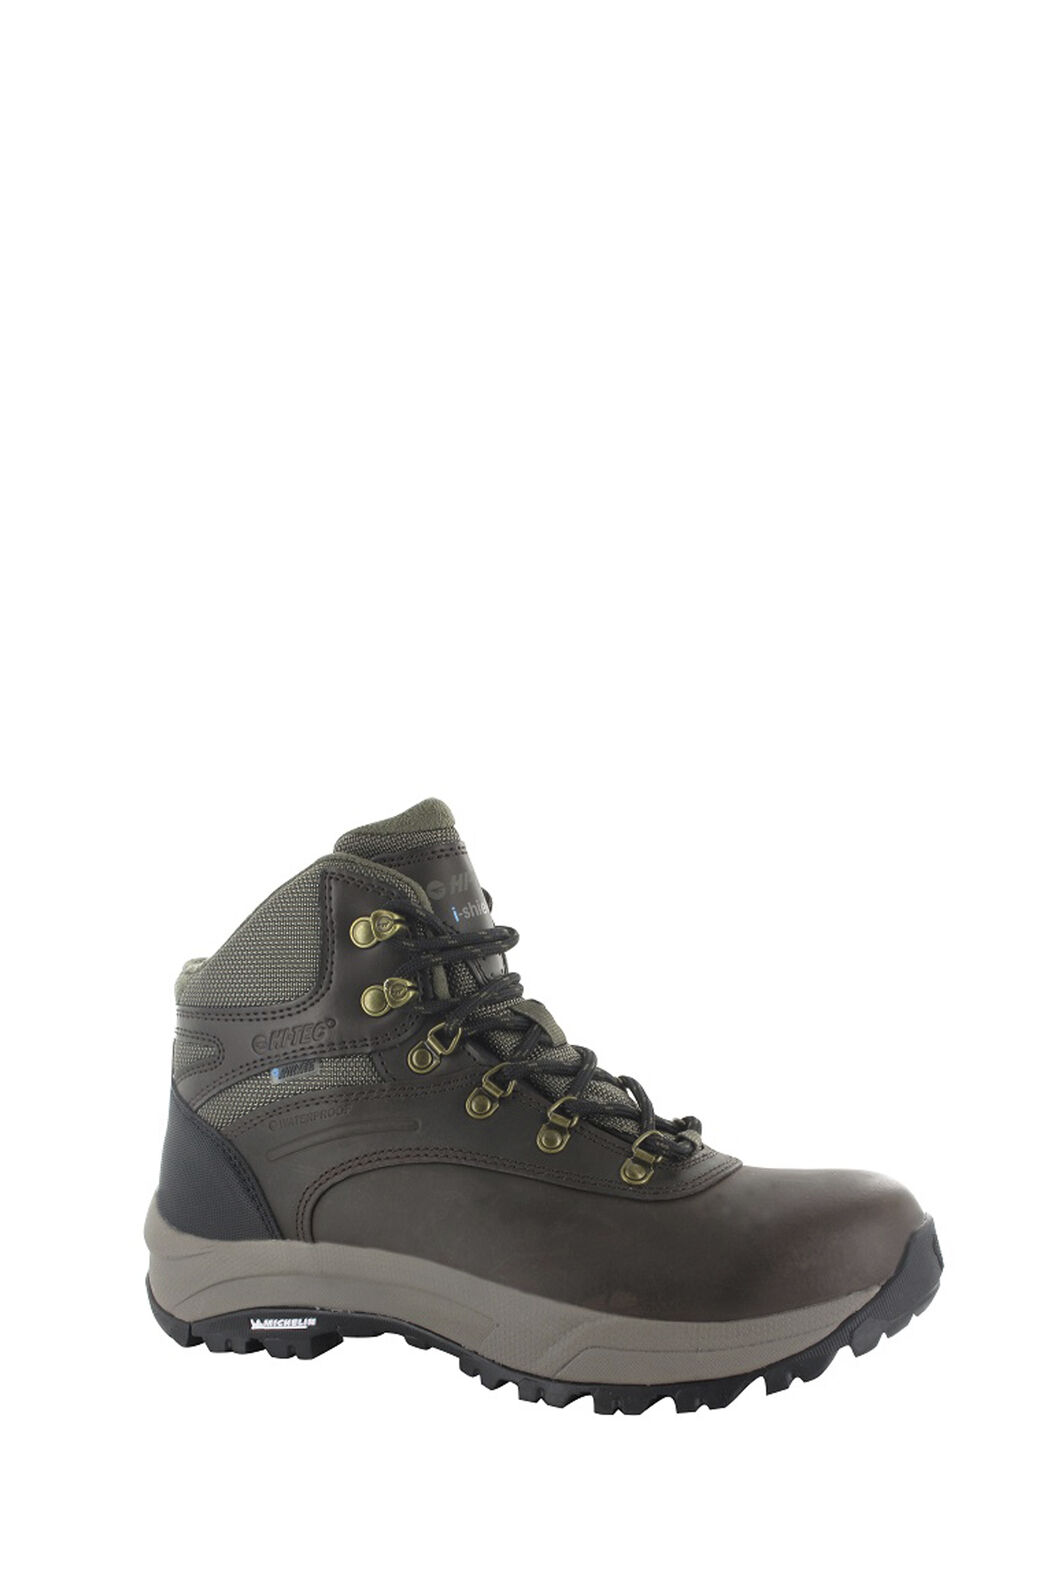 Hi-Tec Altitude VI I WP Boots - Women's, Dark Chocolate, hi-res